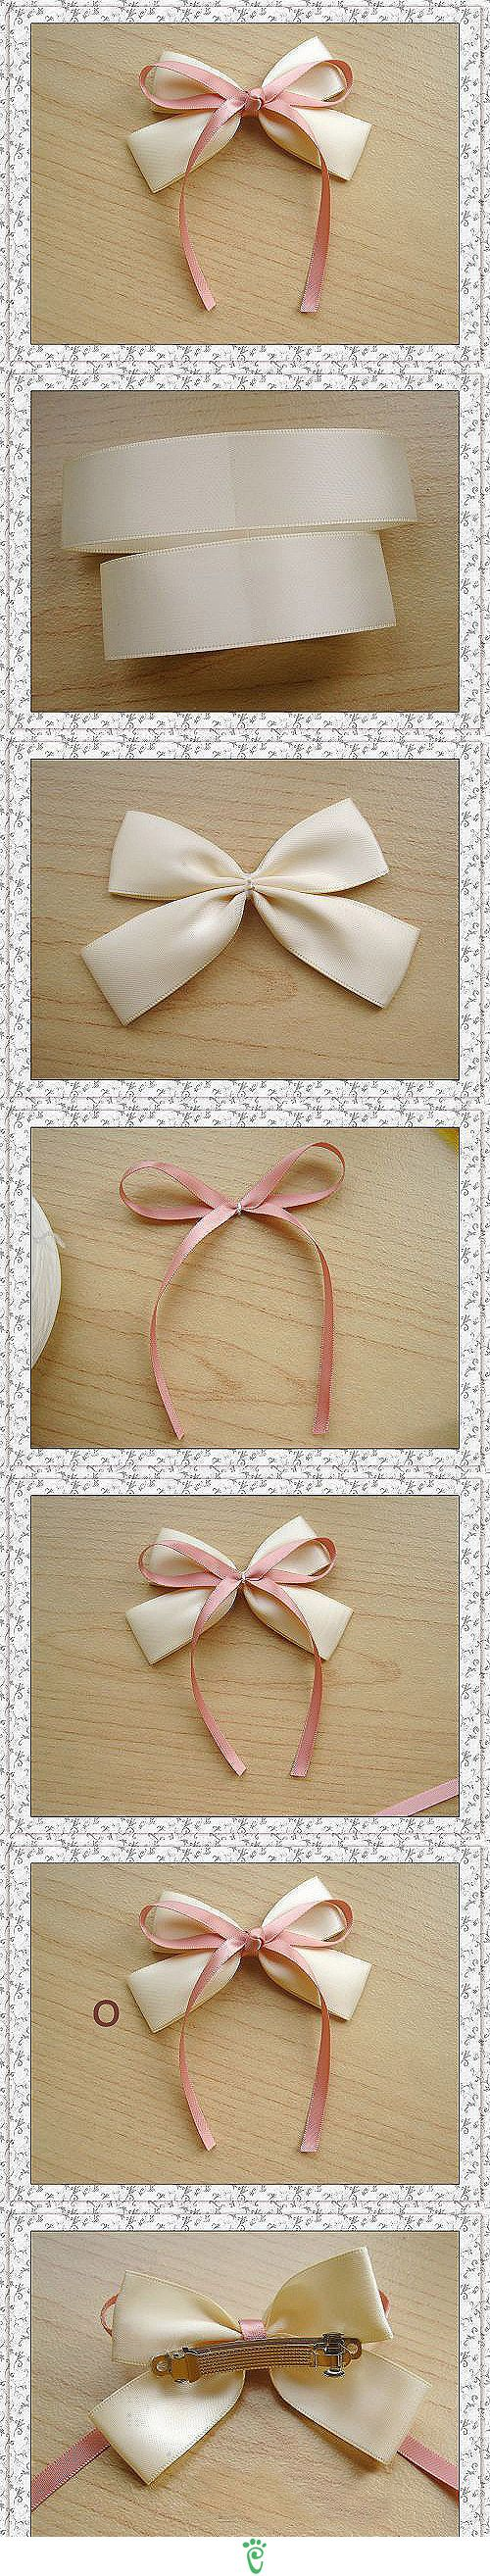 Now I know how to make them with ribbons